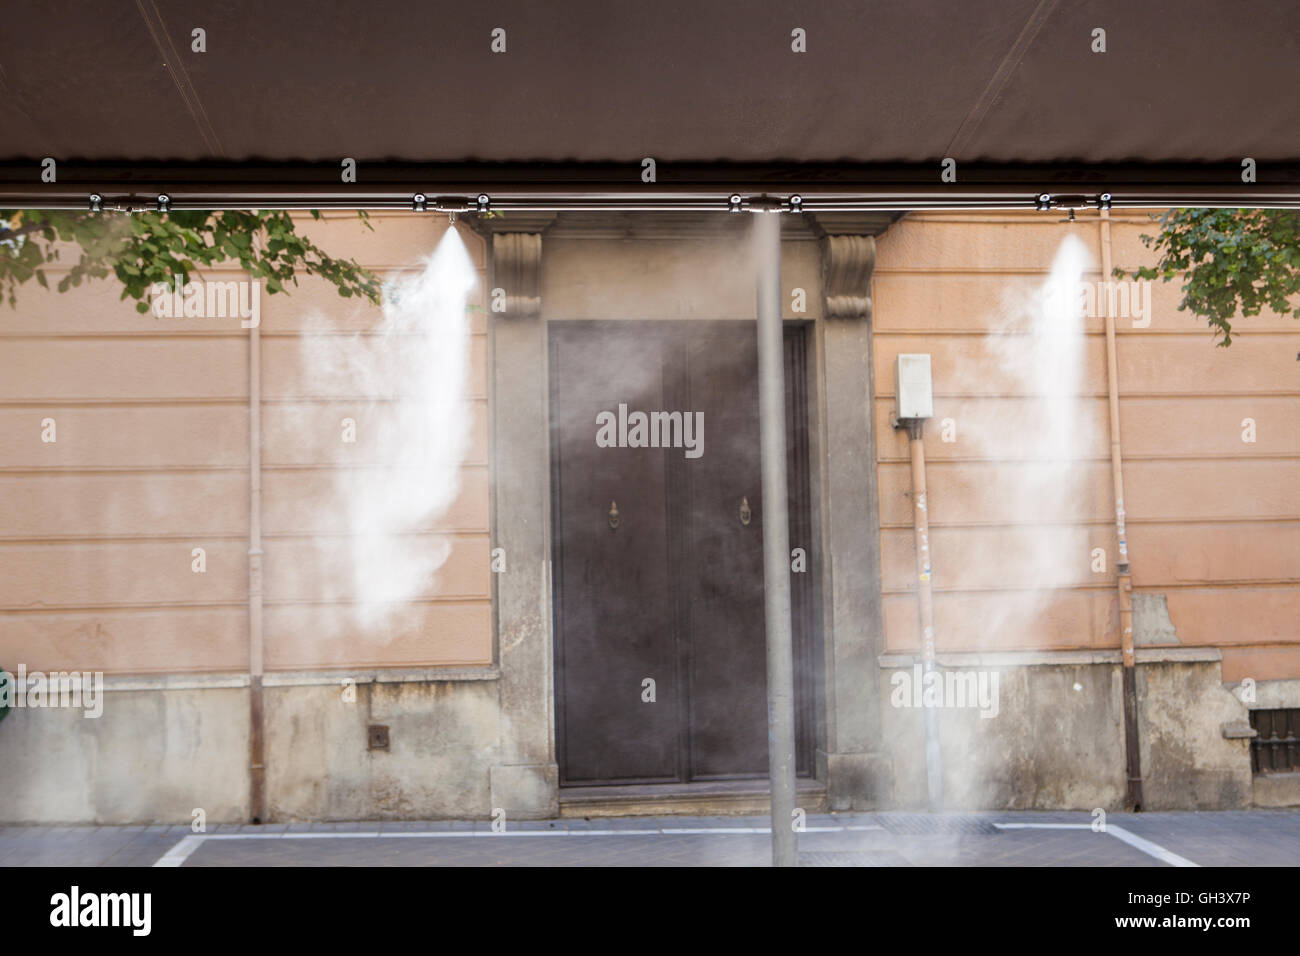 Awning sprinklers splashing vaporized water at terrace bar in order to cool the hot summer temperature in Spain - Stock Image